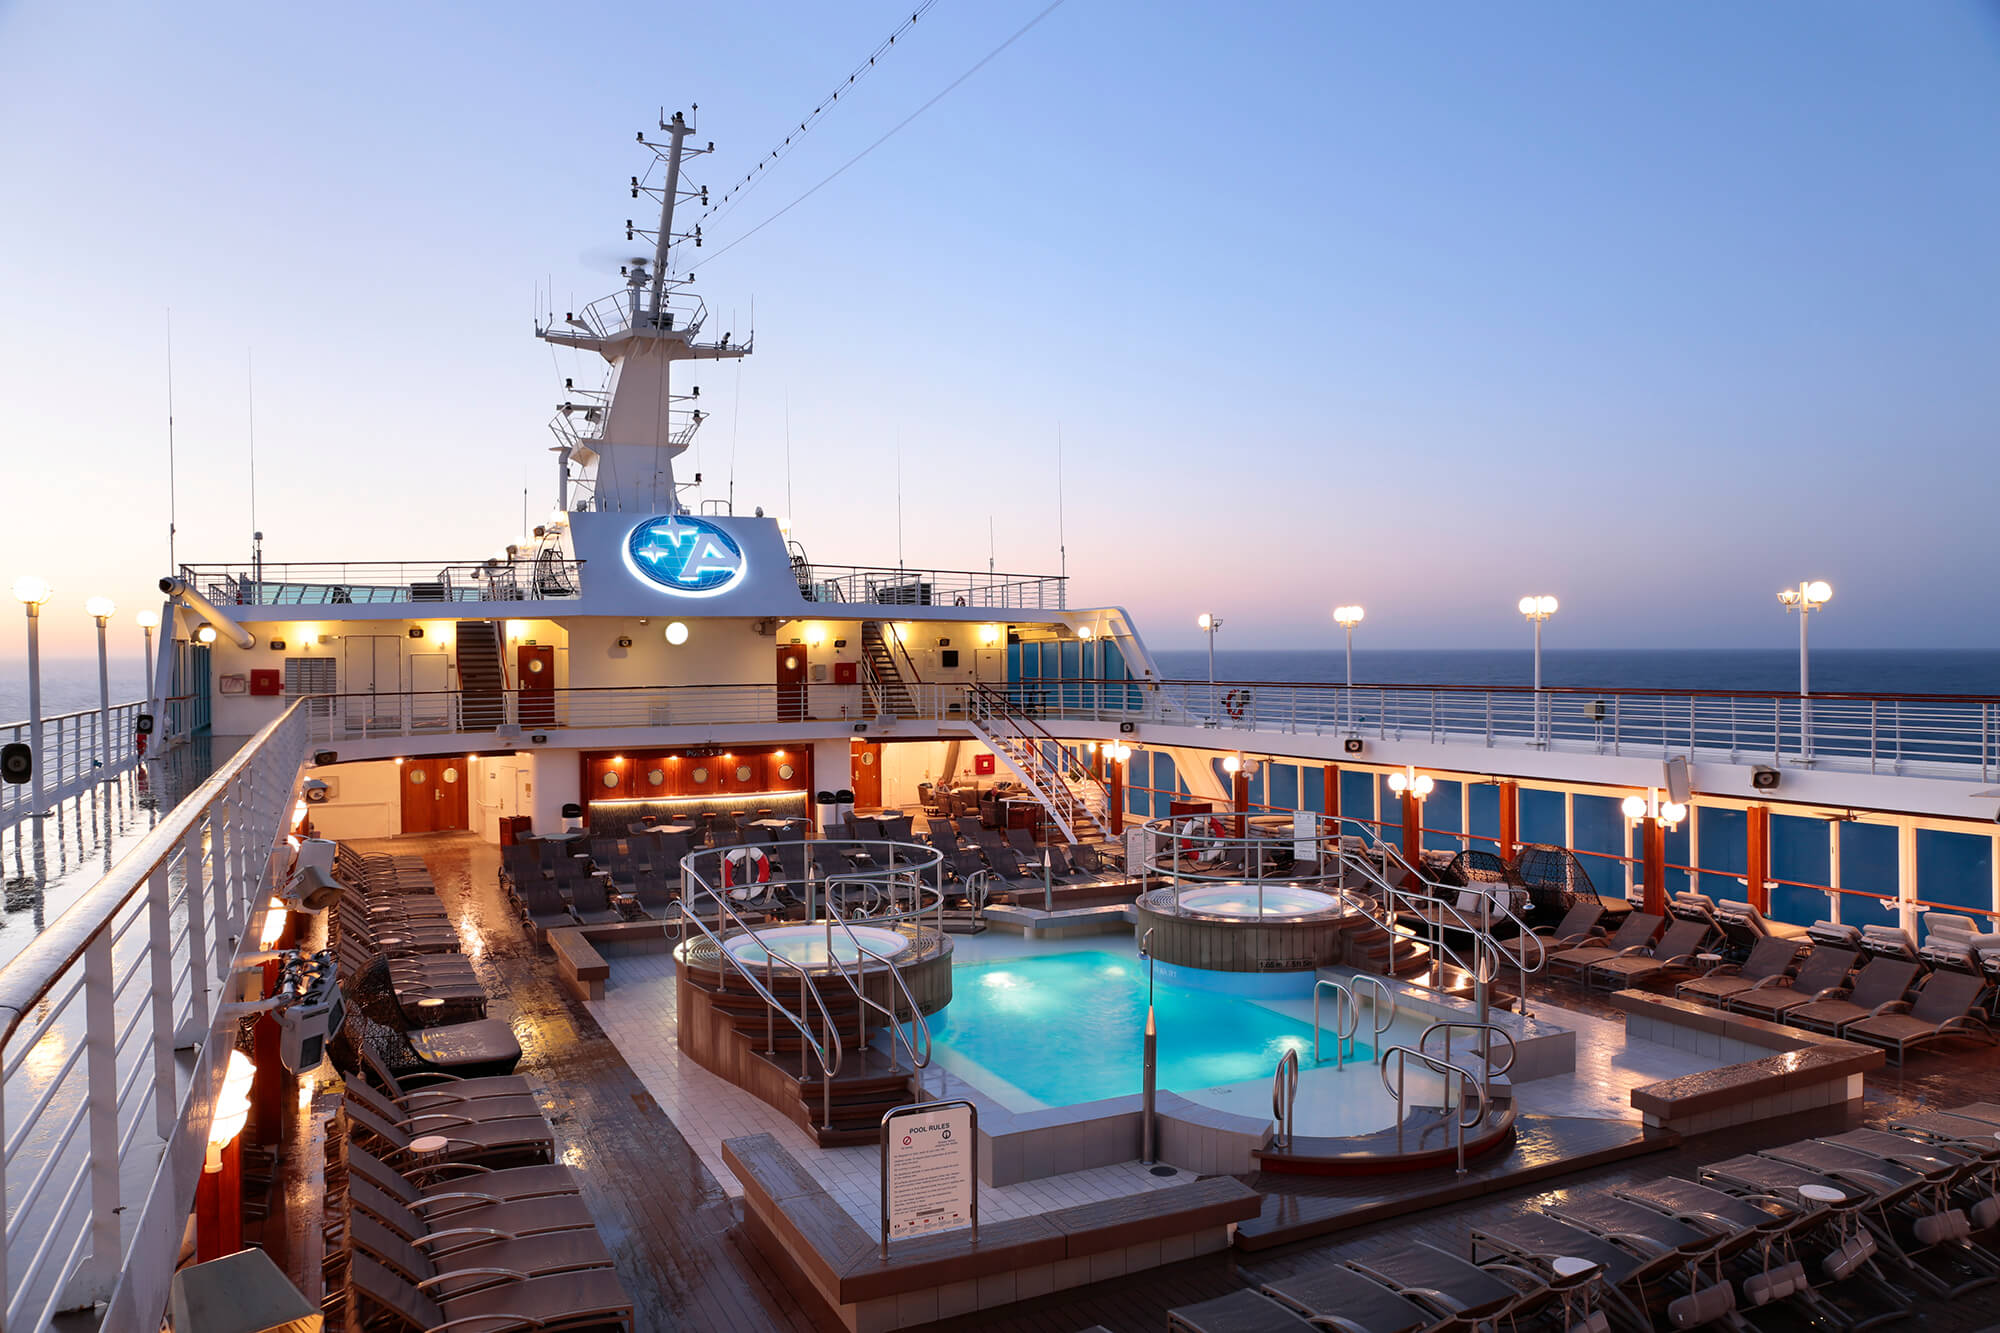 as the local season is only weeks away, we take a look at one of the newcomers to Aussie waters: Azamara Club Cruises